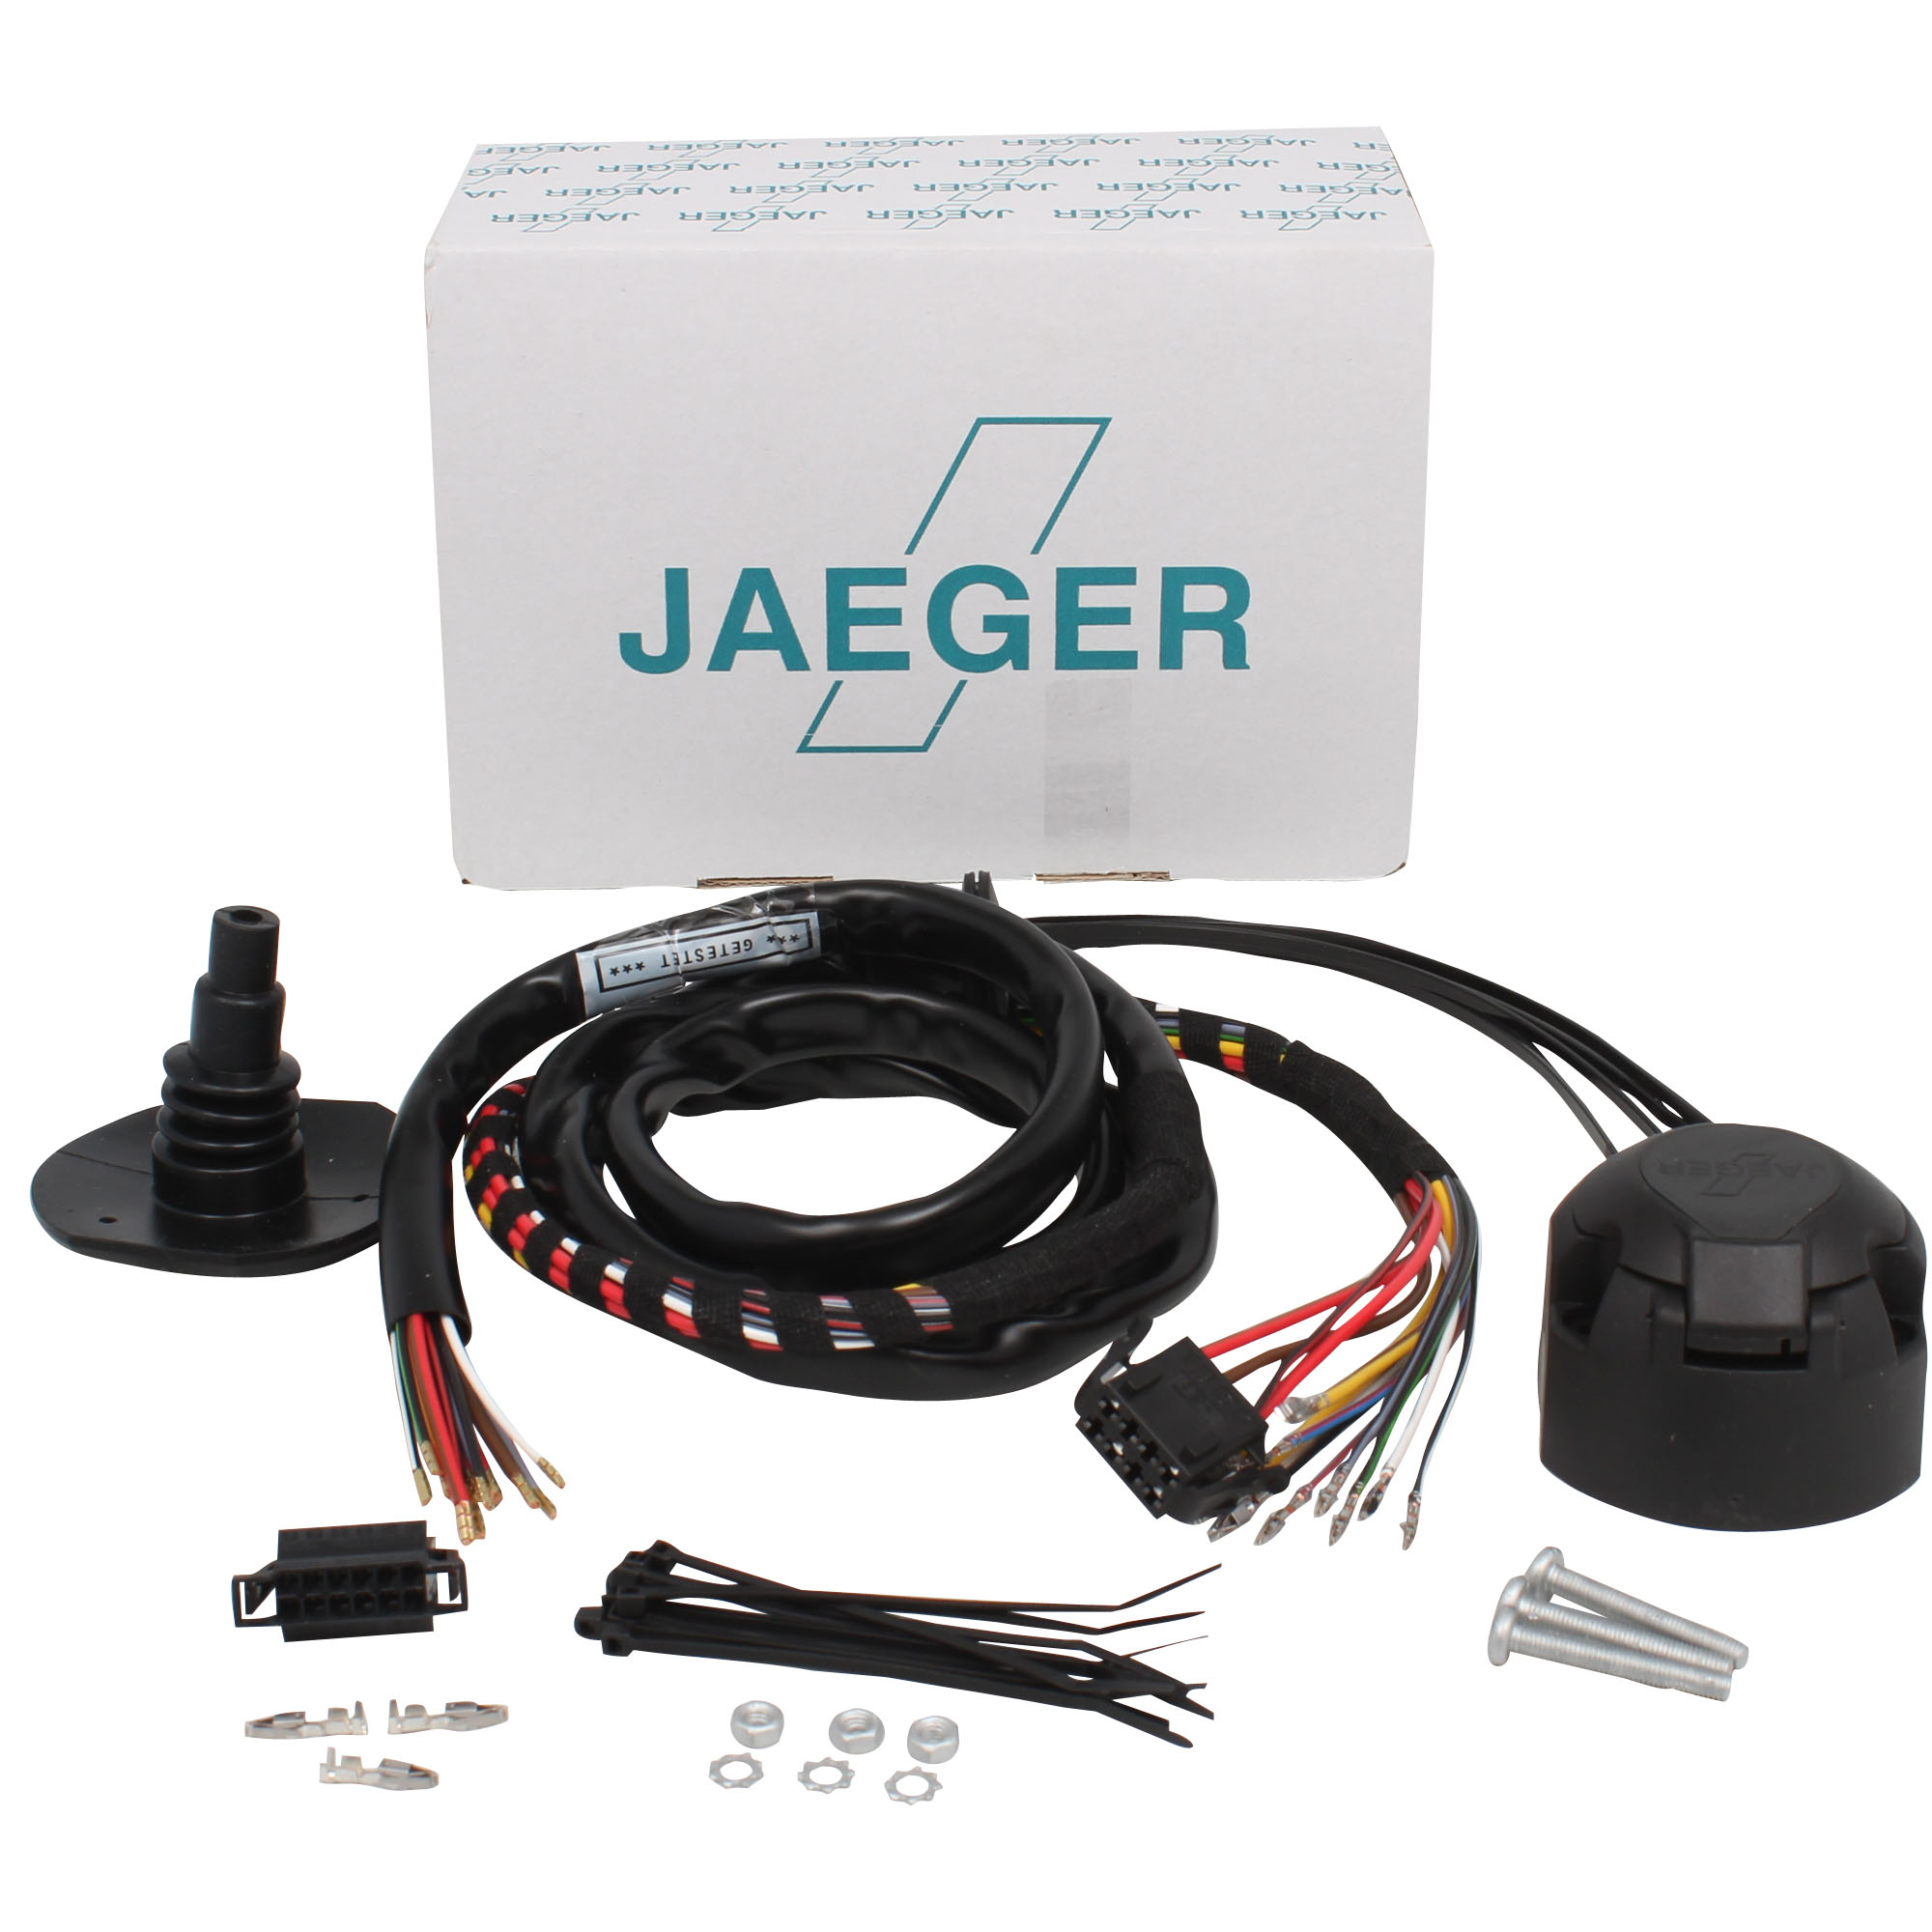 Trekhaak bekabeling jaquar specifieke kabelsets Jaeger Automotive